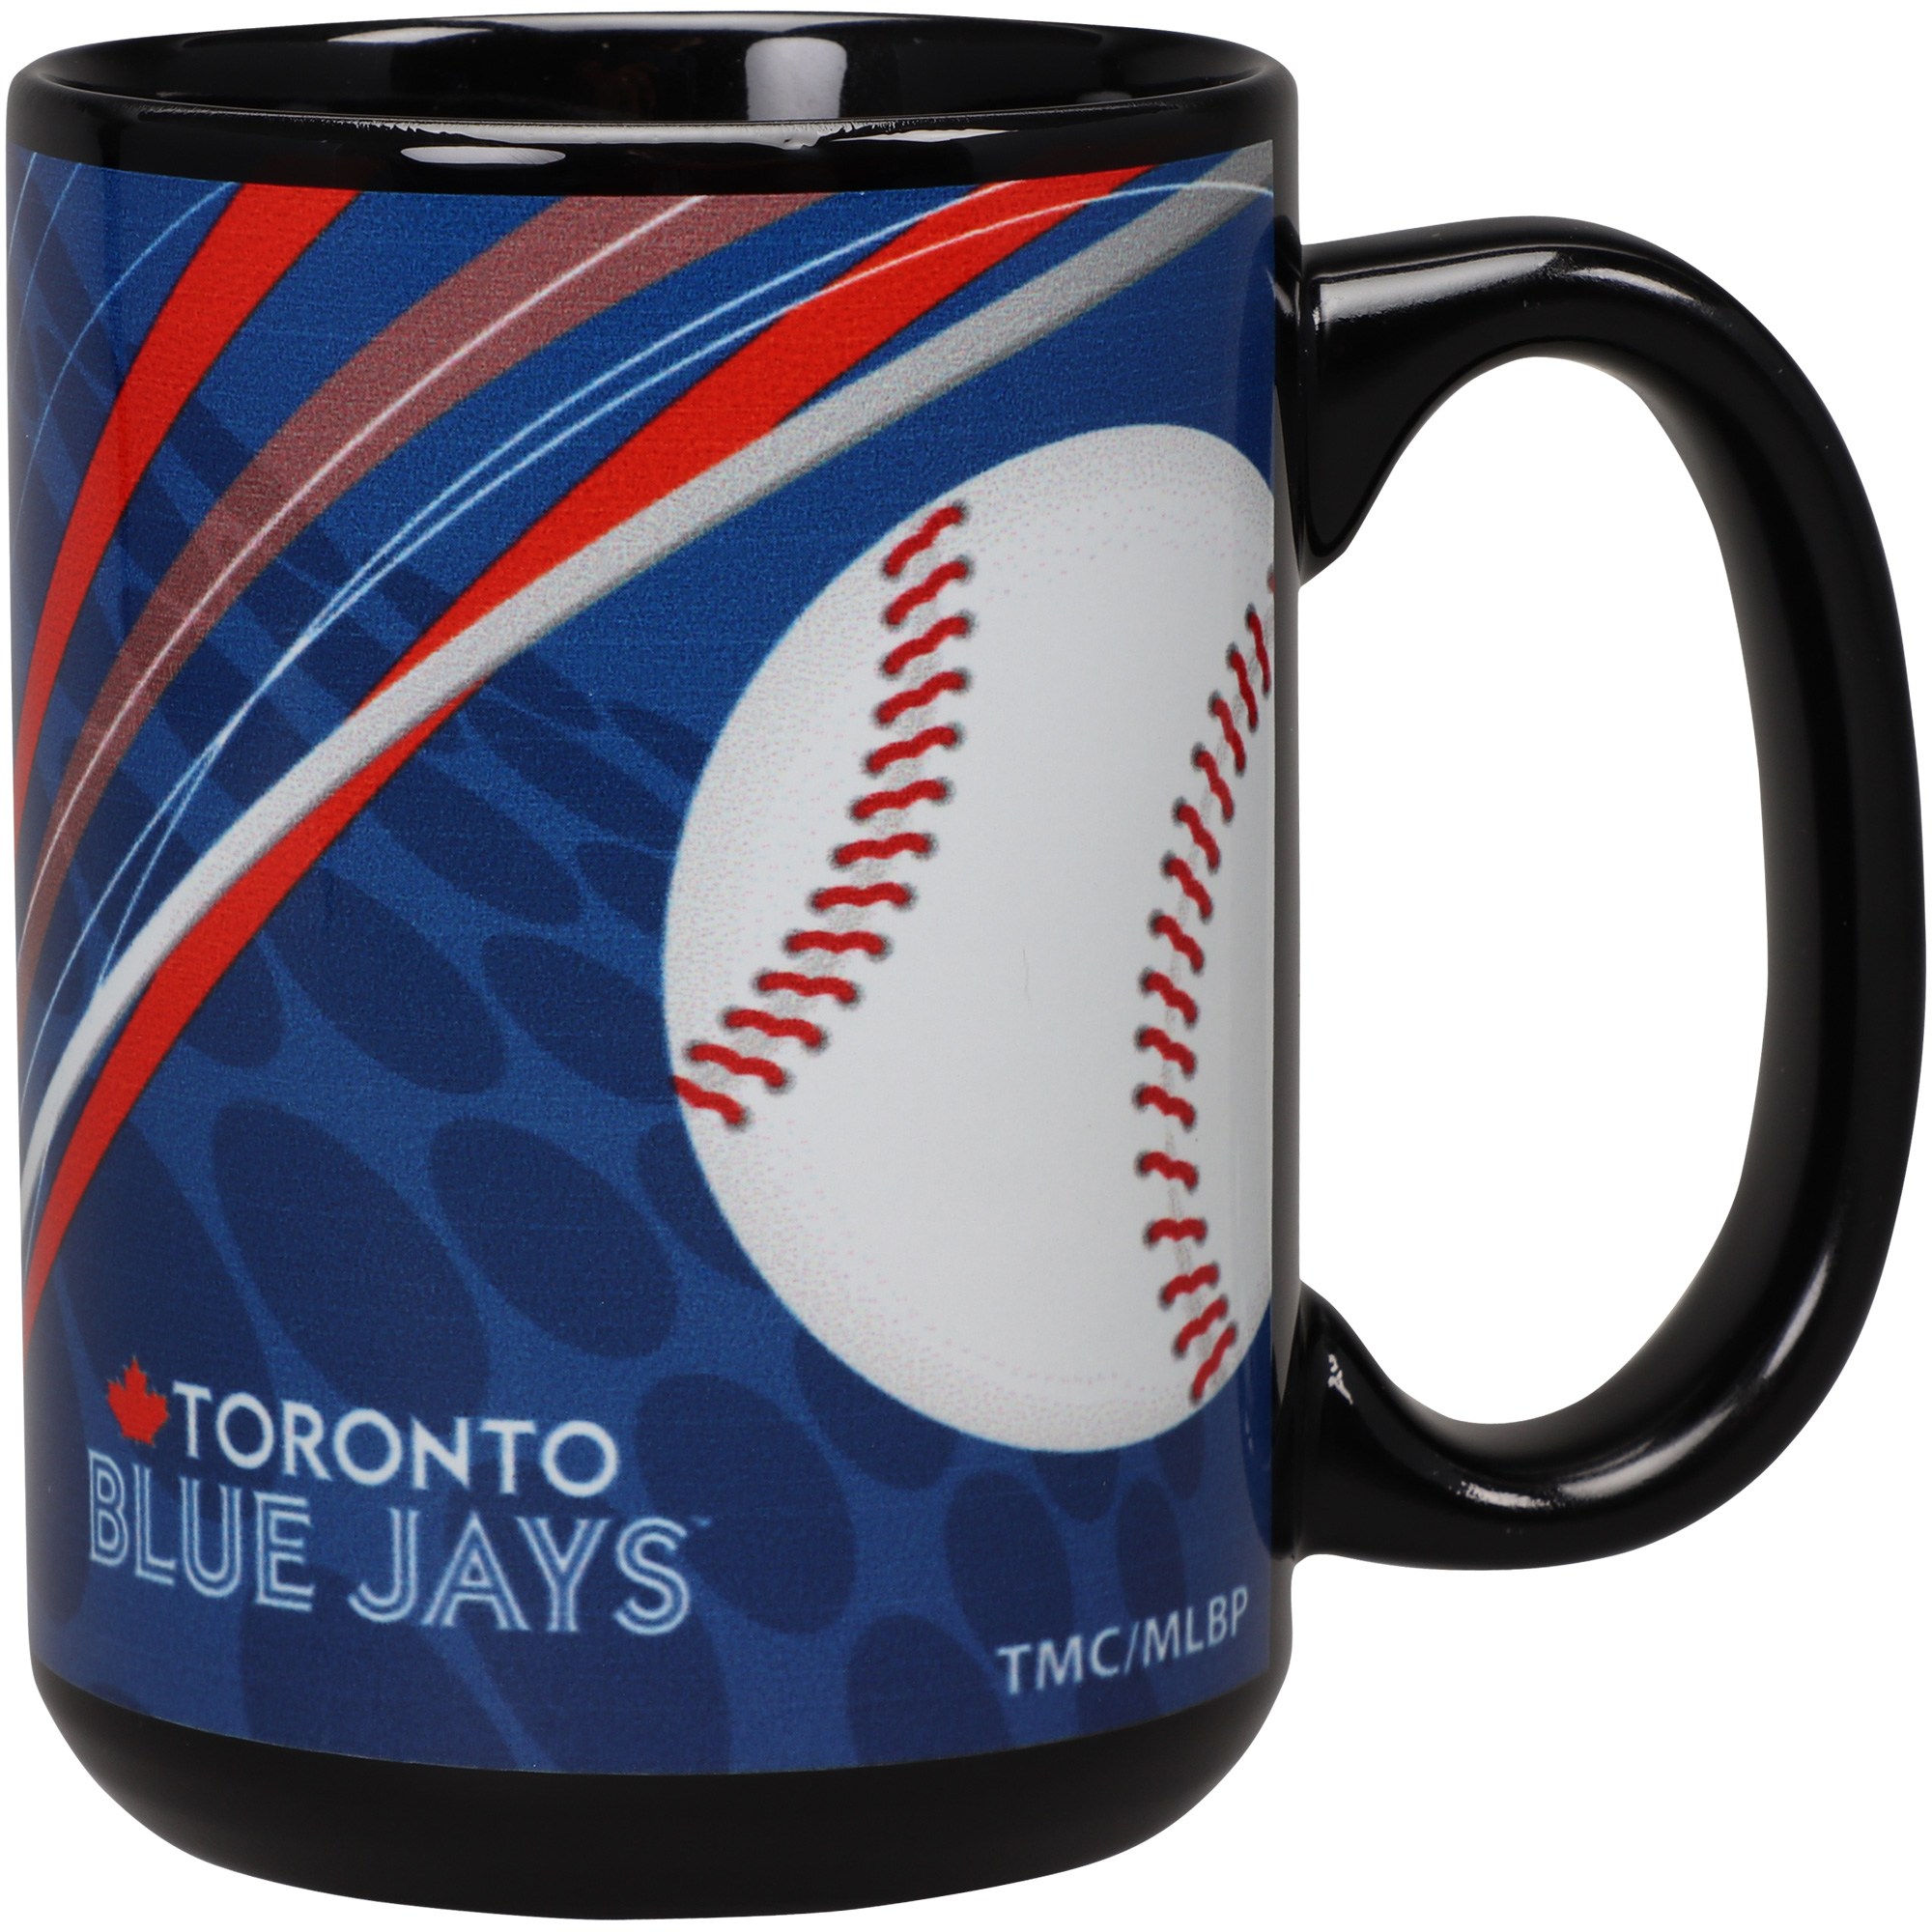 Toronto Blue Jays 15oz. Dynamic Mug - No Size